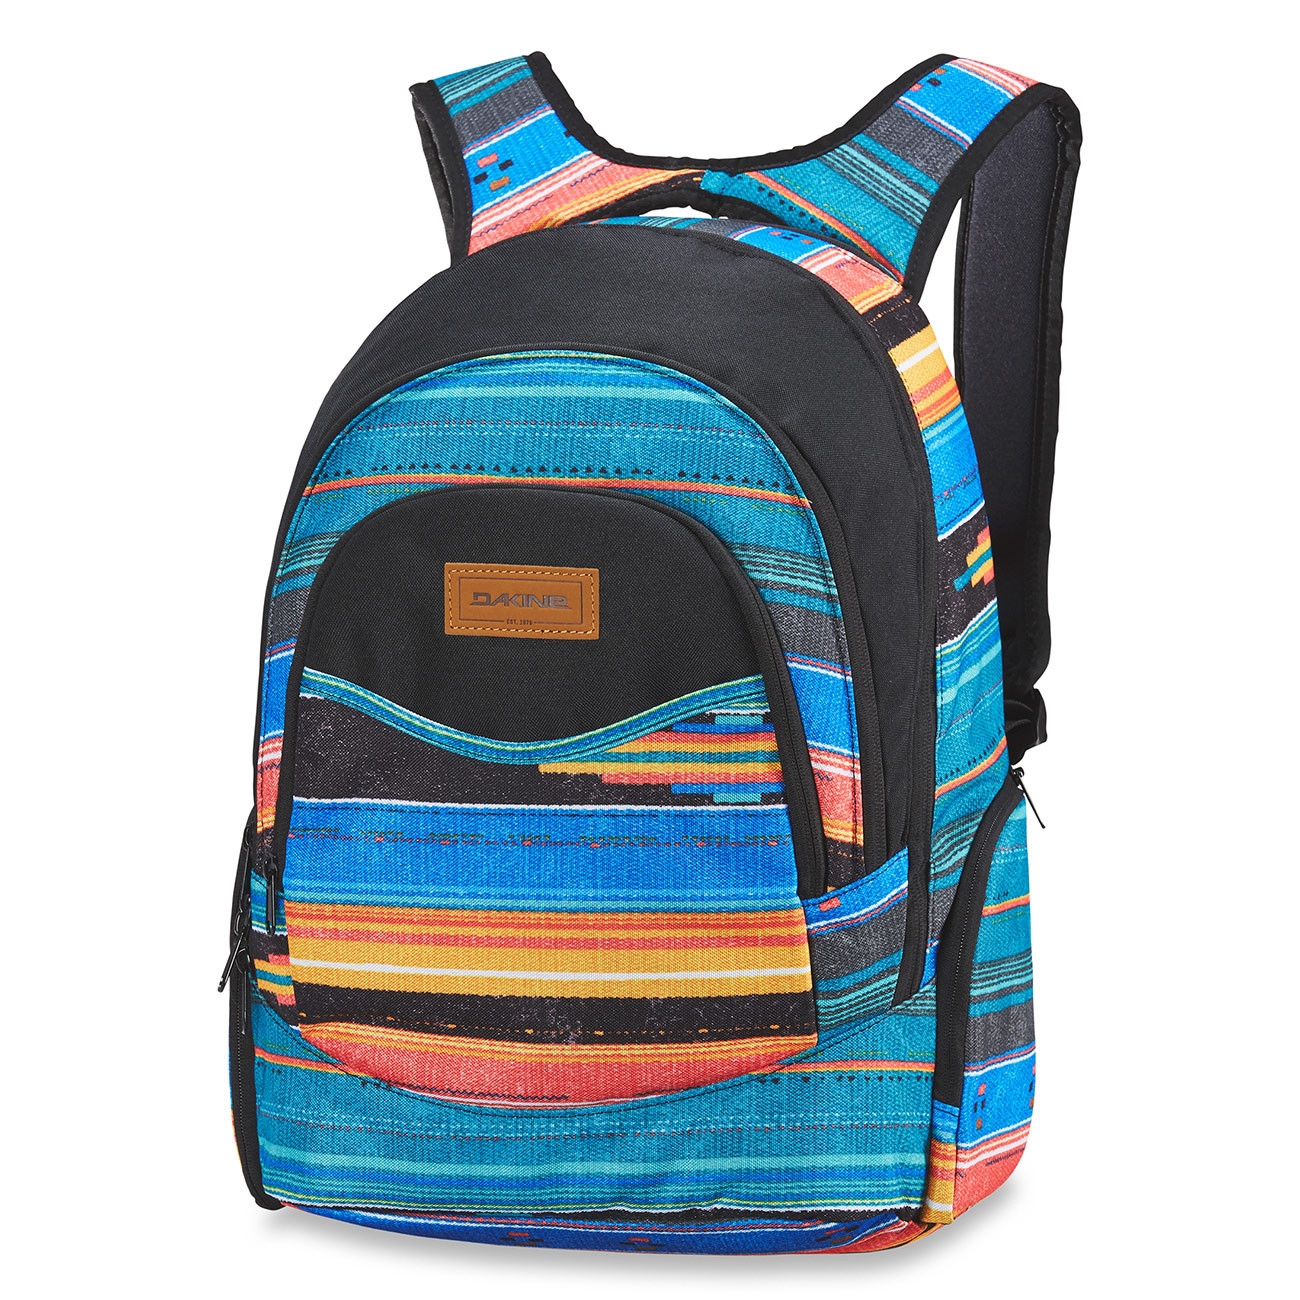 Dakine Garden Backpack 20L (Baja Sunset) Backpack Bags yJyOj